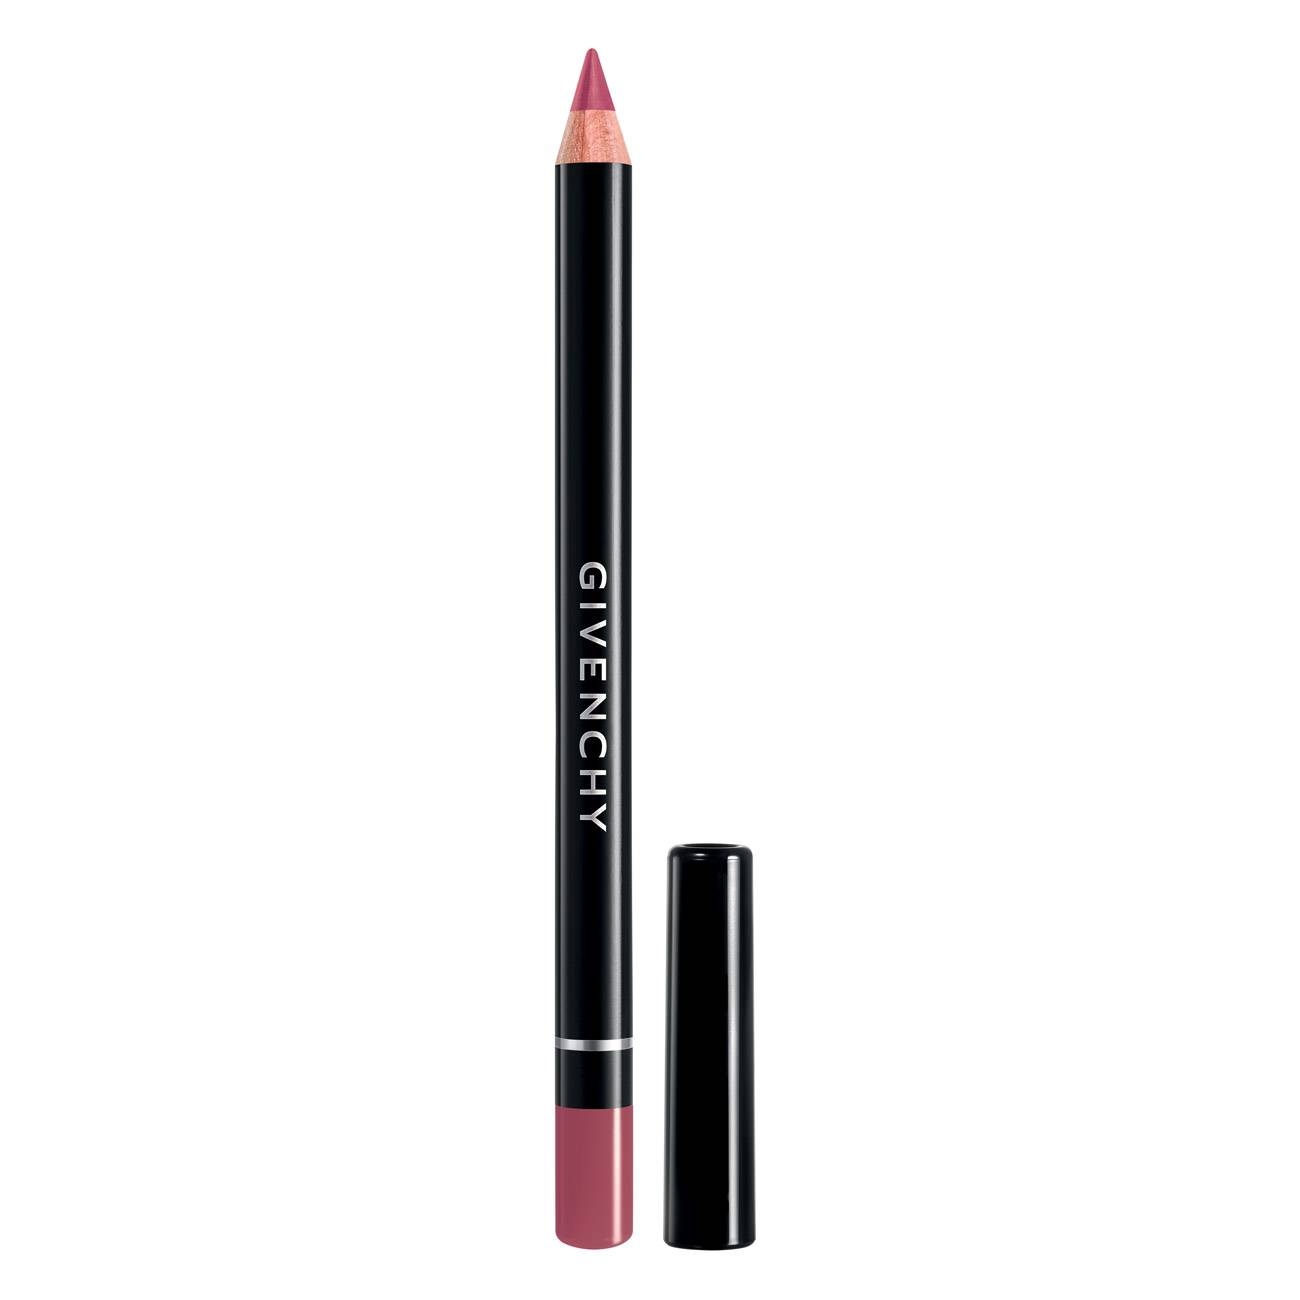 Lip Liner 1 G Parme Silhouette 8 Givenchy imagine 2021 bestvalue.eu